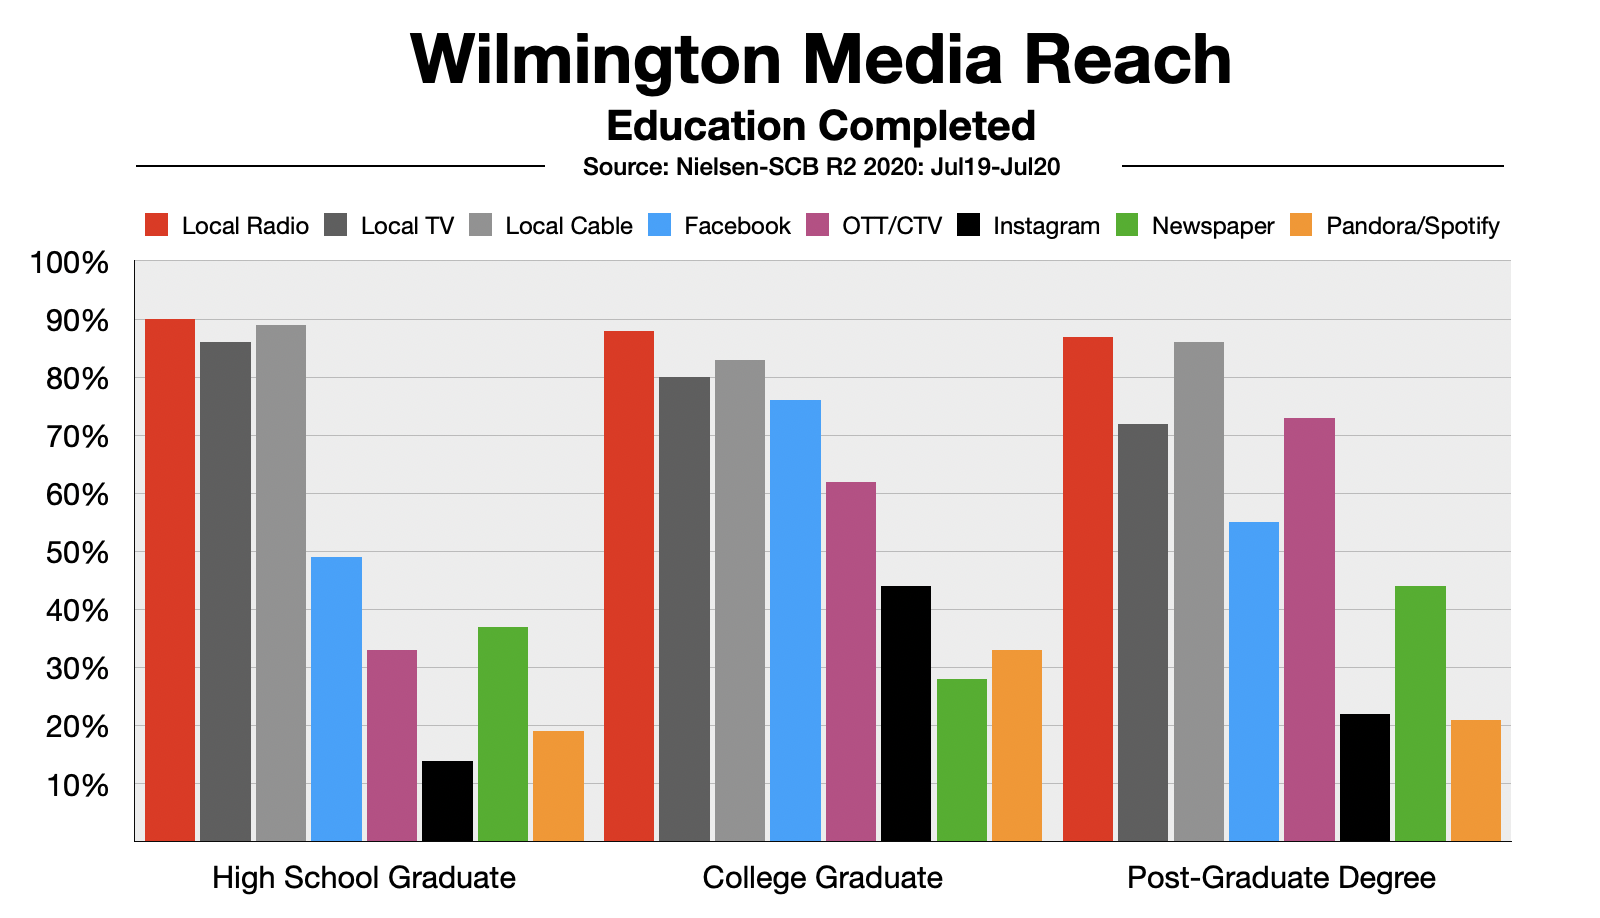 Advertising In Wilmington Reach By Education Completed